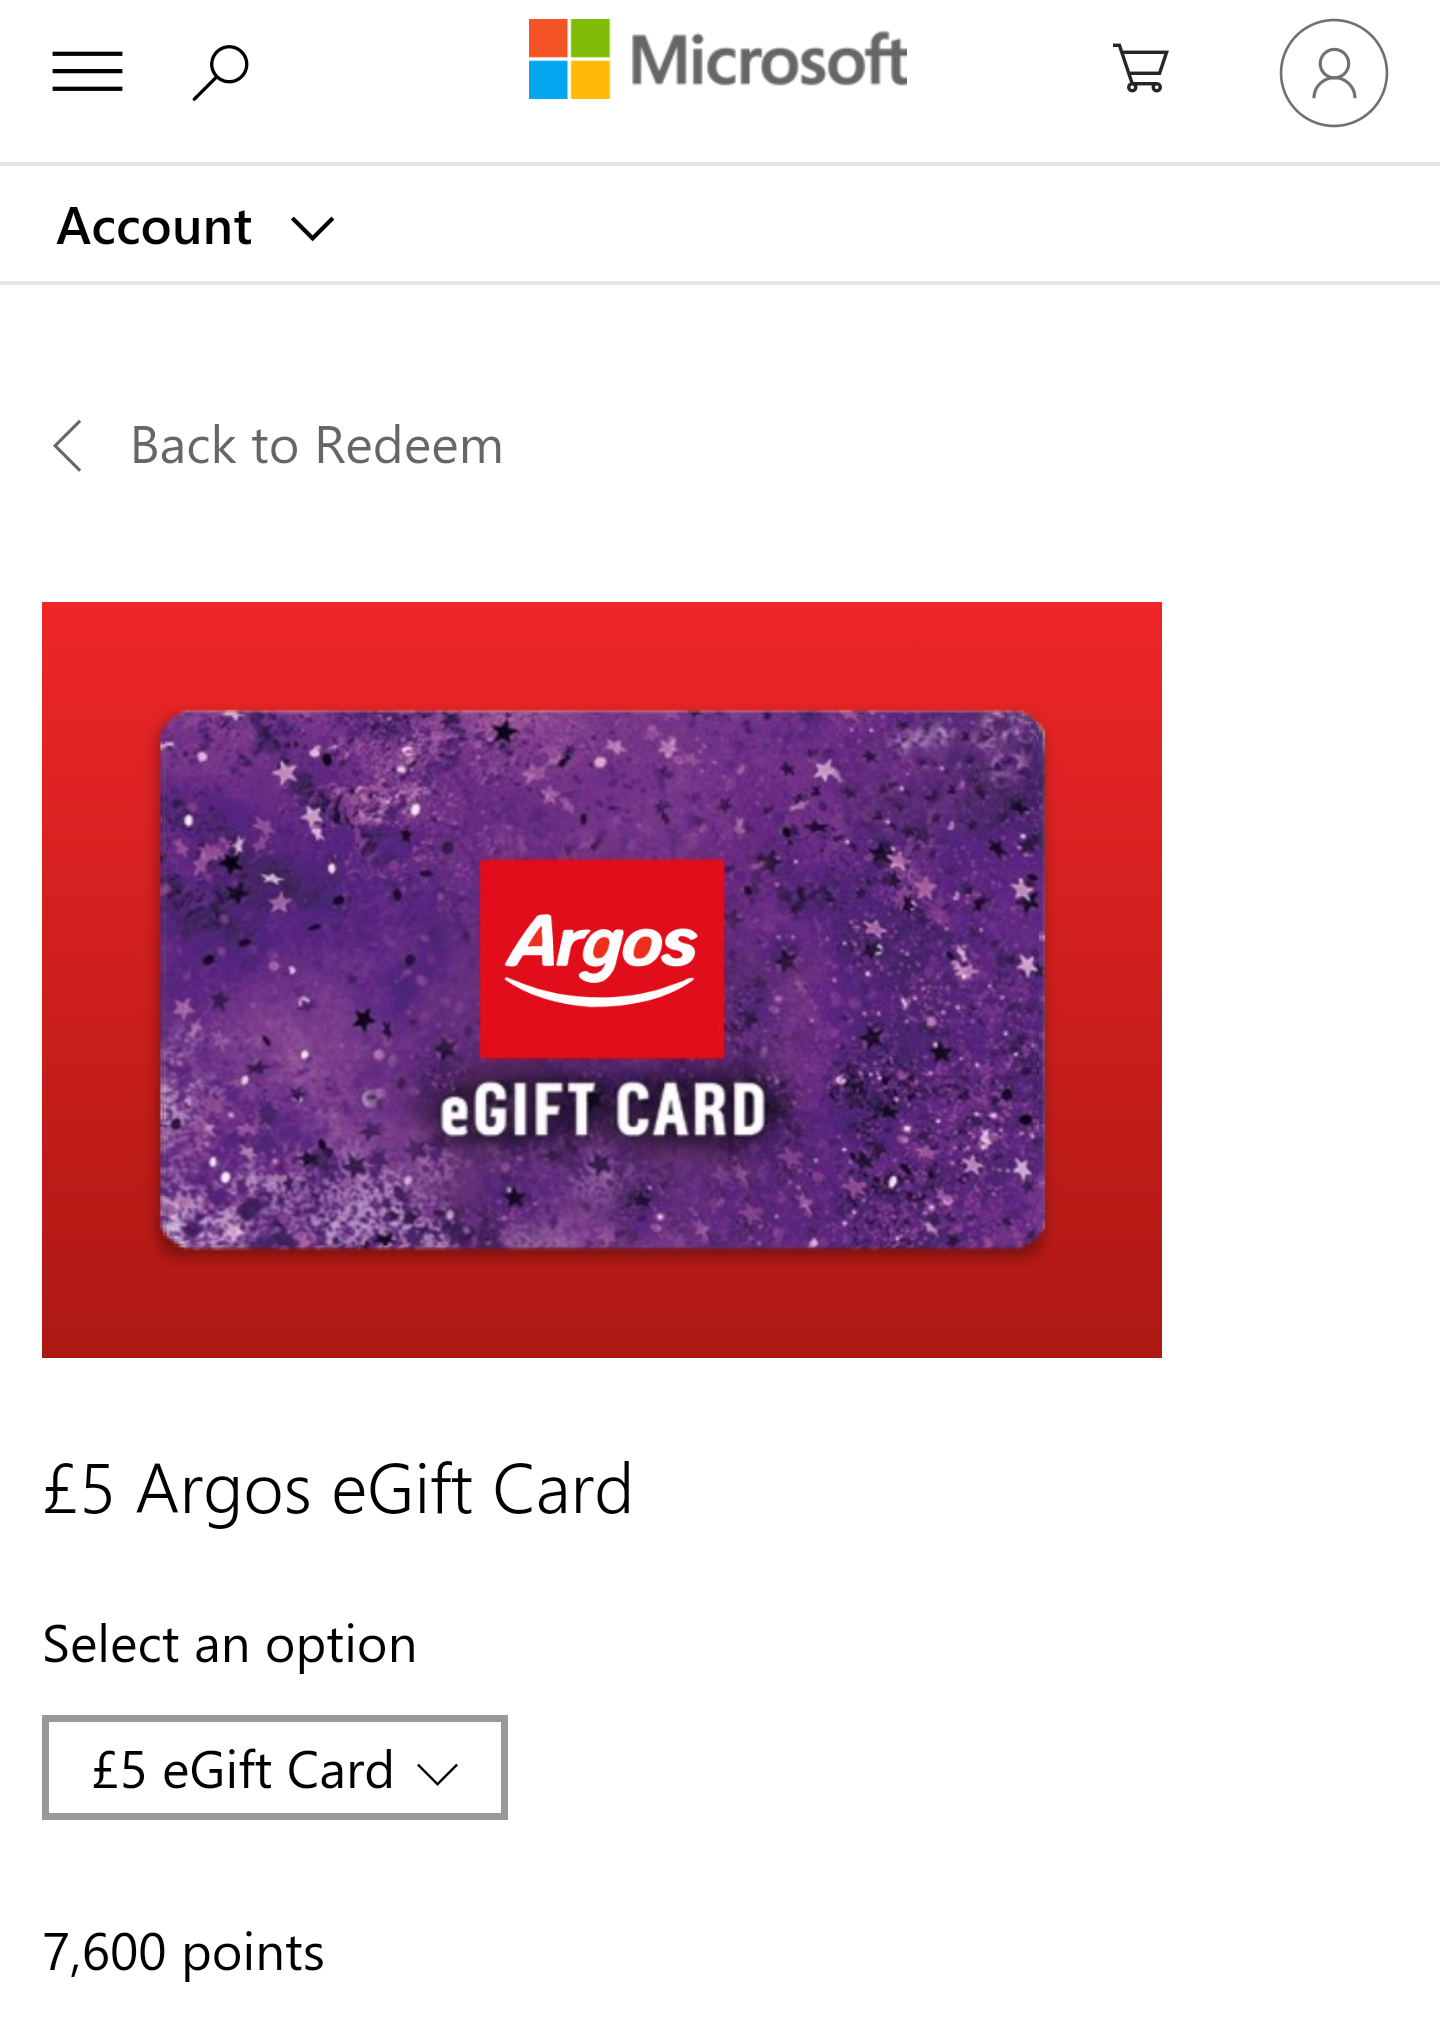 Microsoft Rewards Argos Giftcard